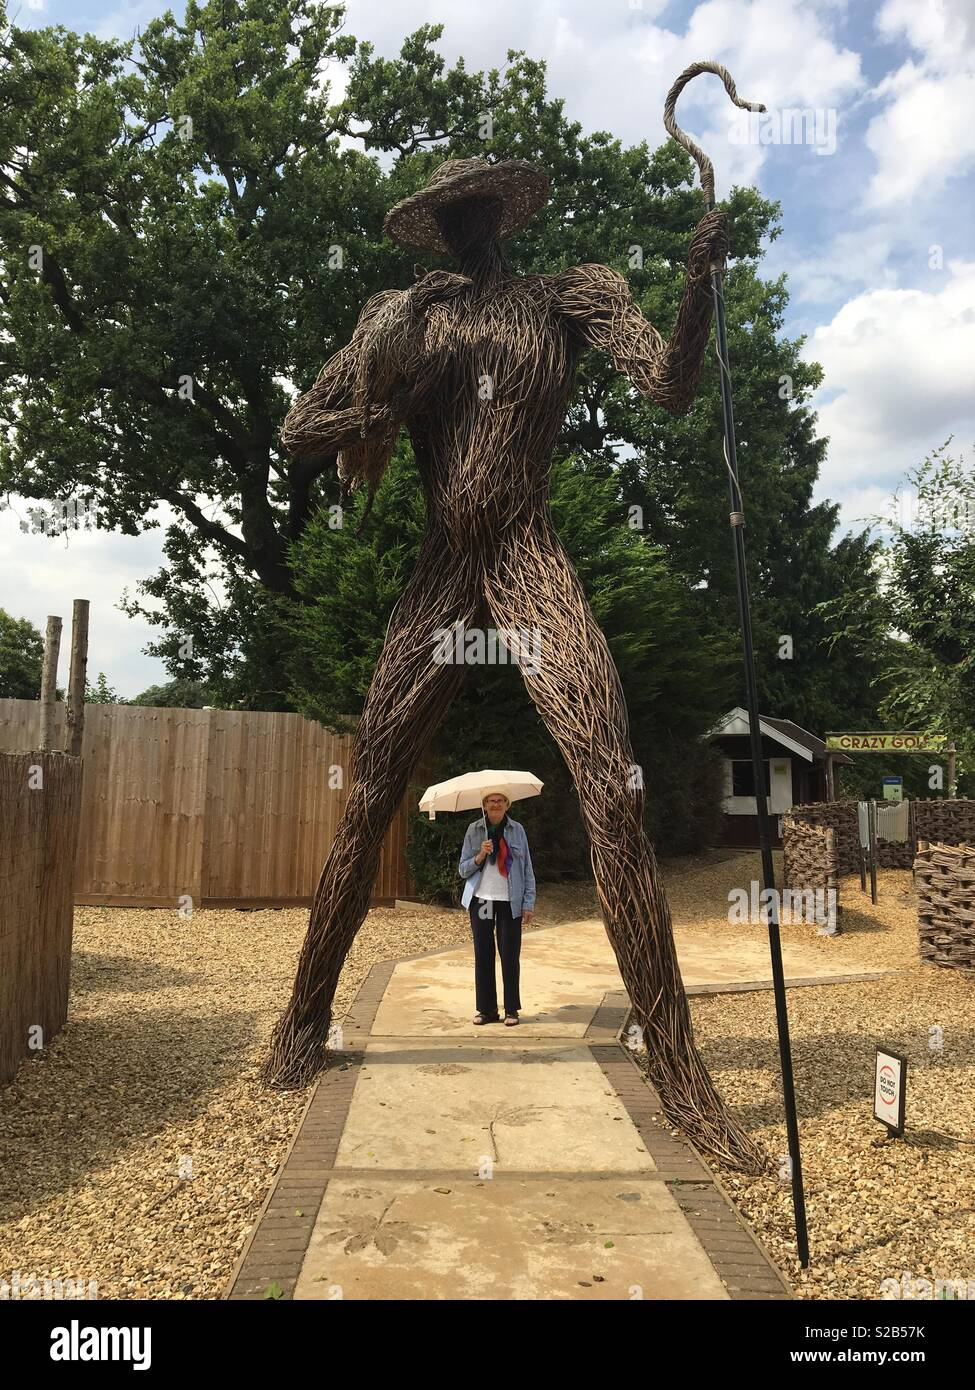 Dwarfed by the Wicker Man at Wicksteed Park Kettering - Stock Image